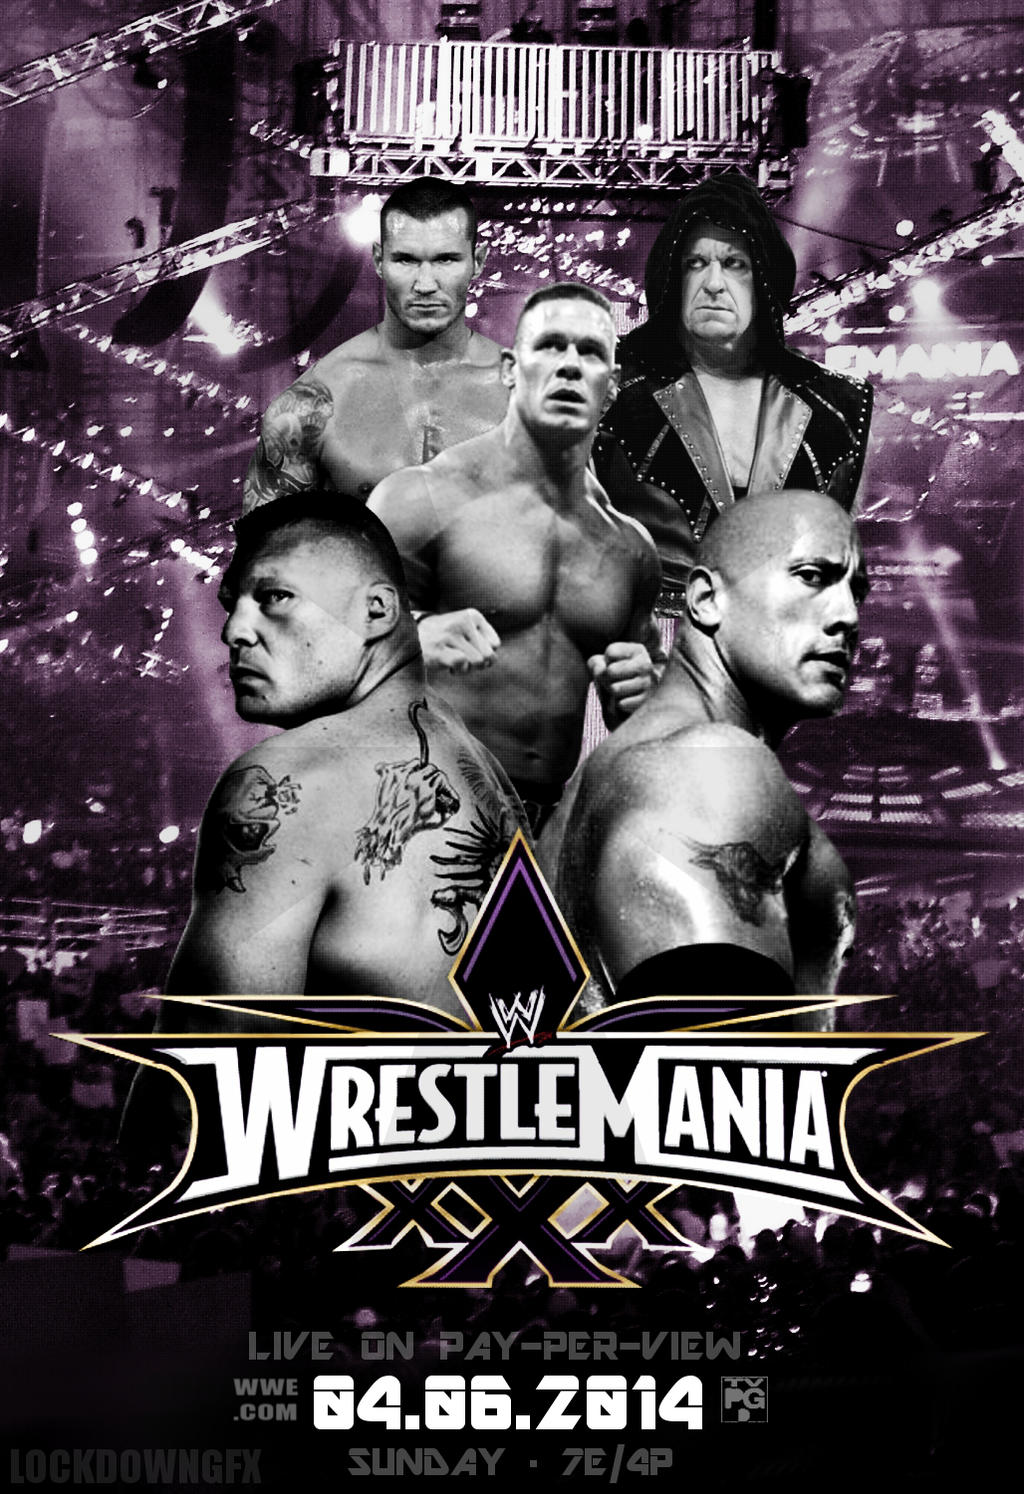 WWE WRESTLEMANIA 30 POSTER -  April 6, 2014 by LockdownGFX